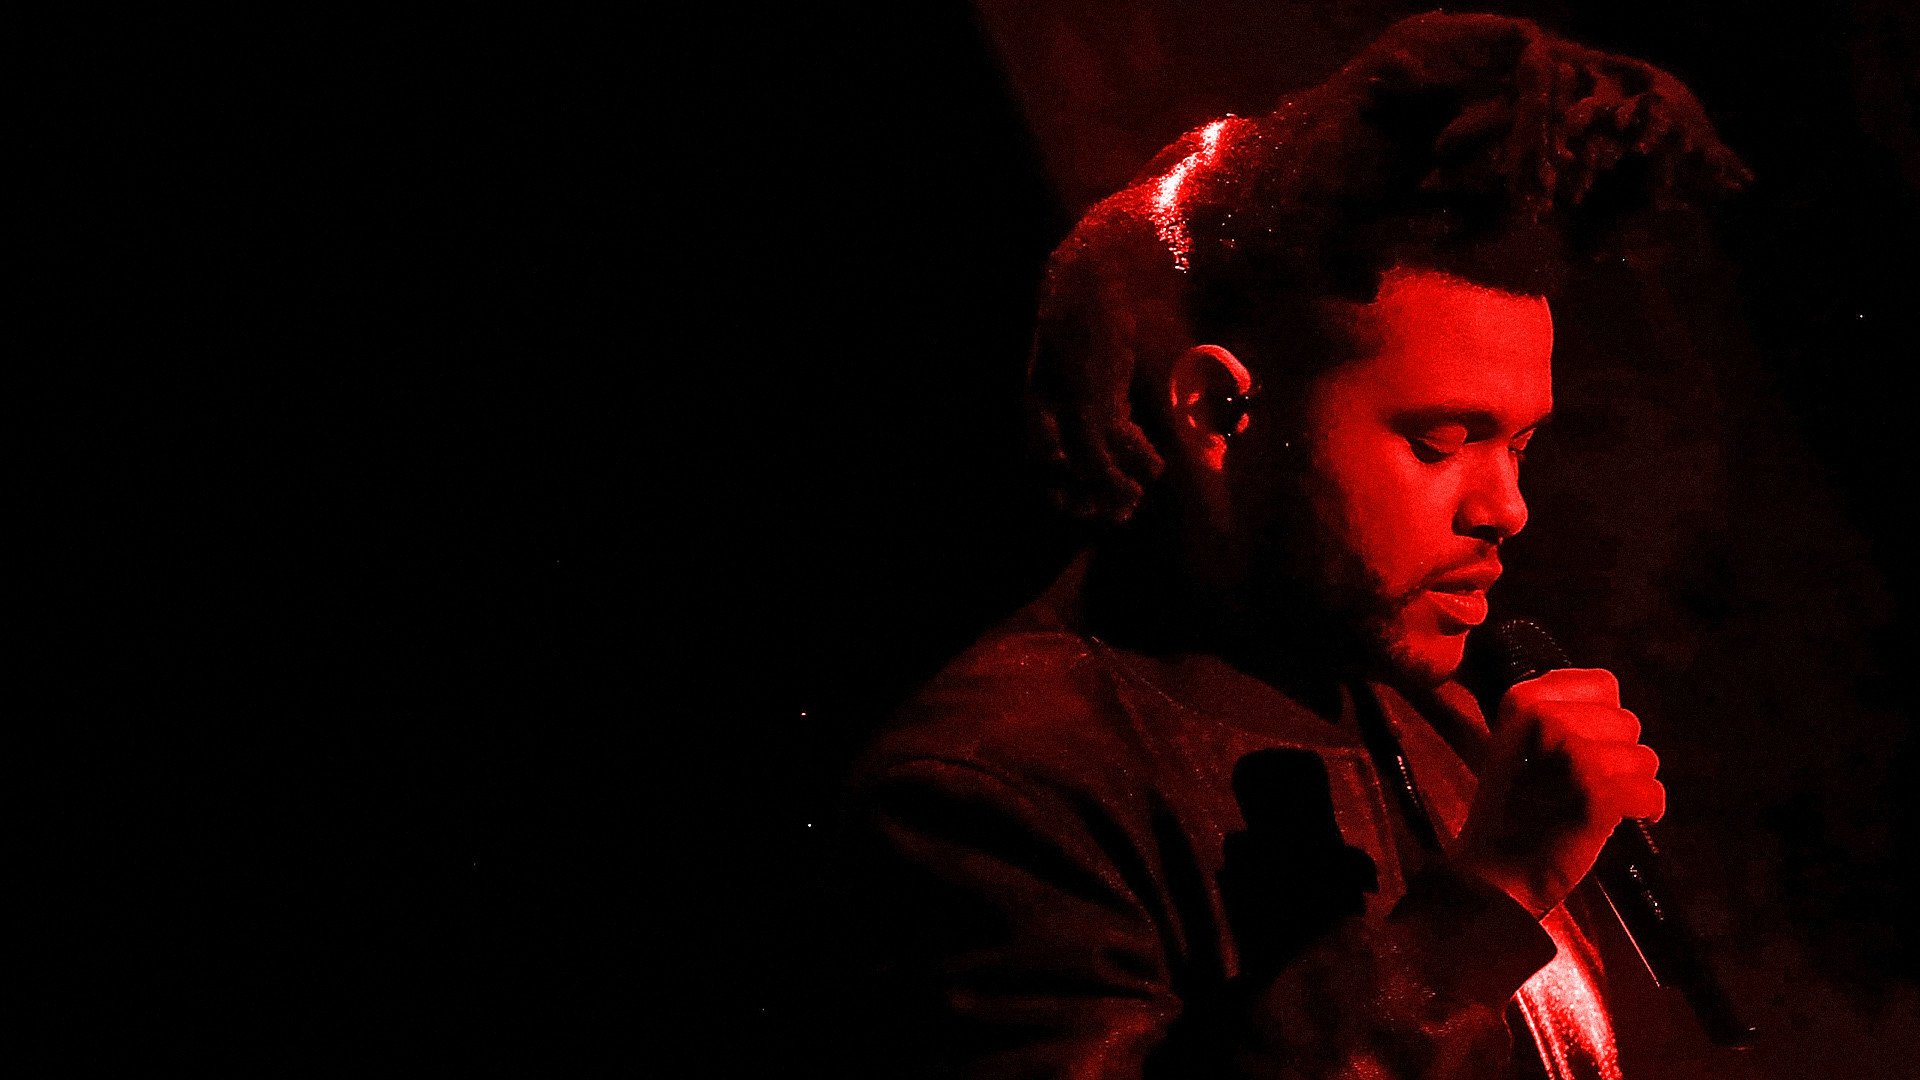 Trilogy The Weeknd wallpaper 1024×769 The Weeknd Wallpapers (39 Wallpapers)  | Adorable